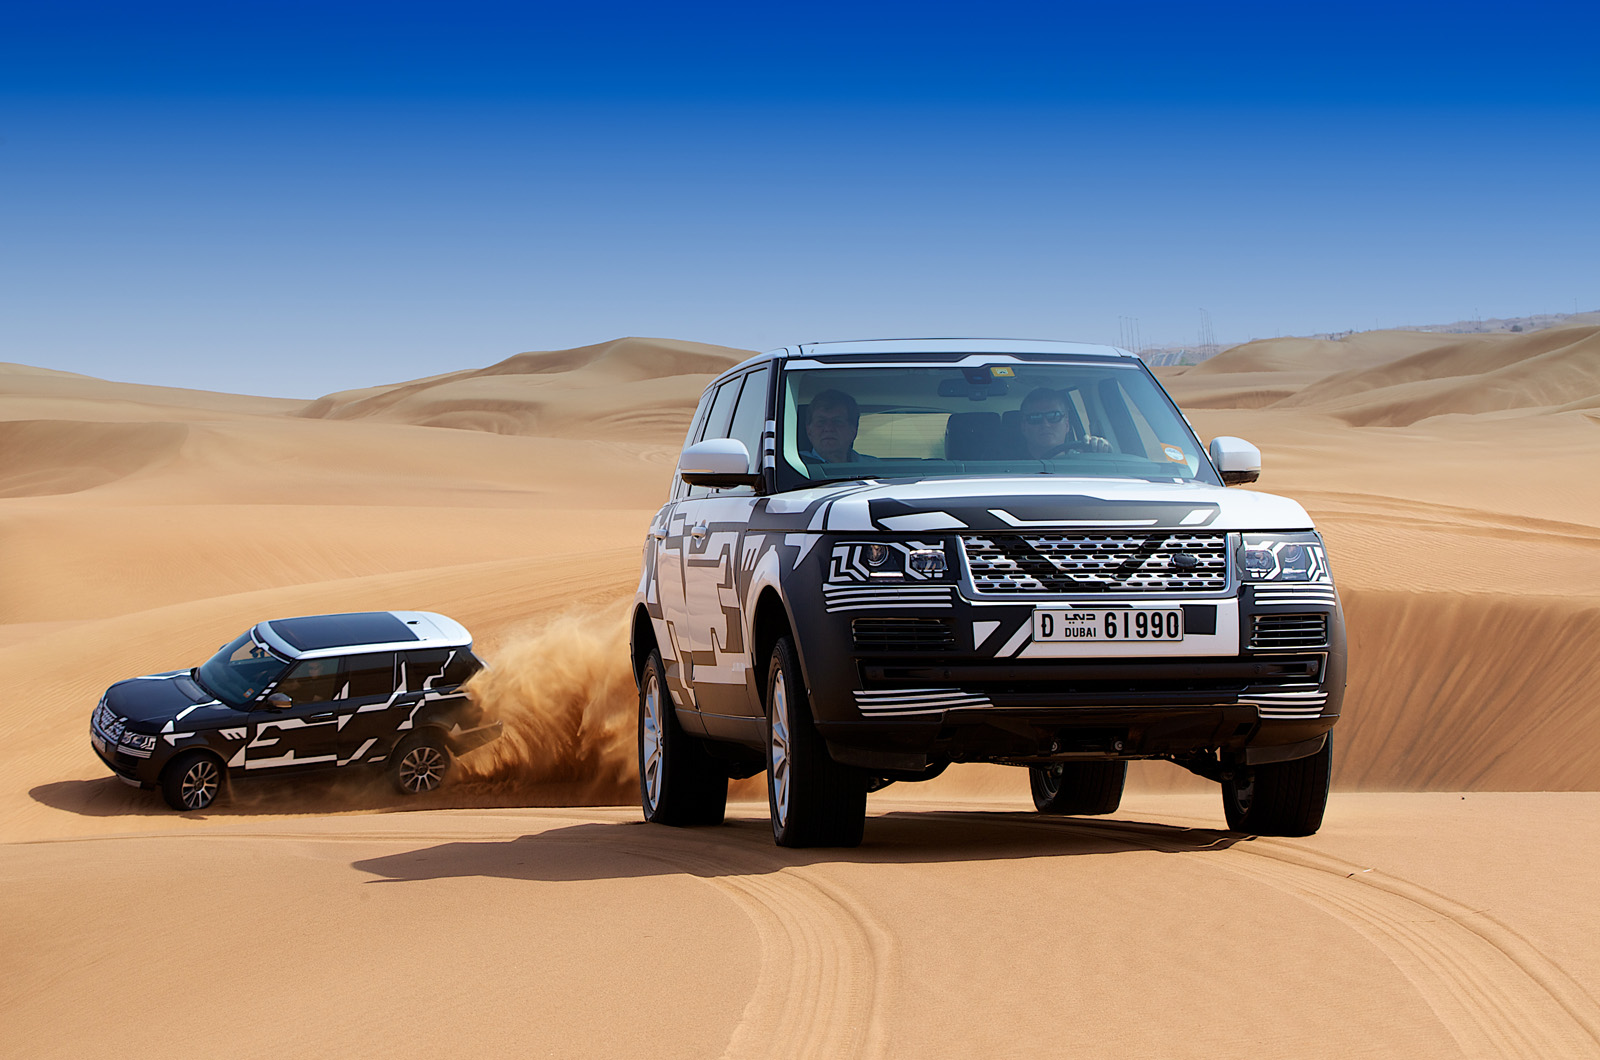 New Range Rover 4: we ride shotgun on and off road